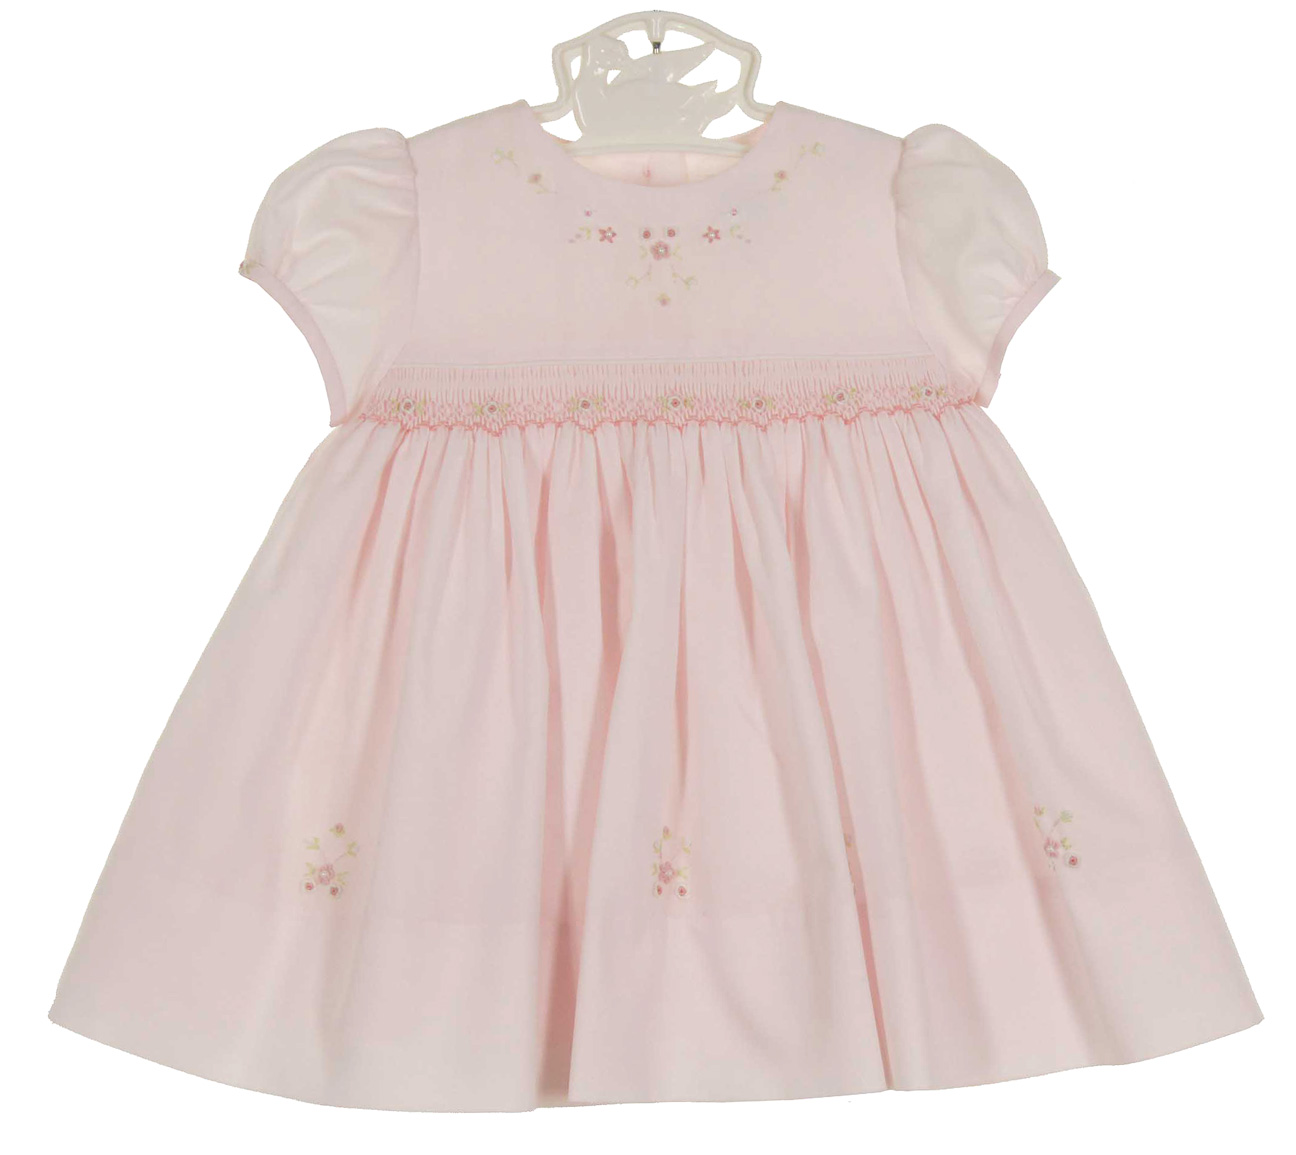 Sarah Louise pink smocked dress with pink and white